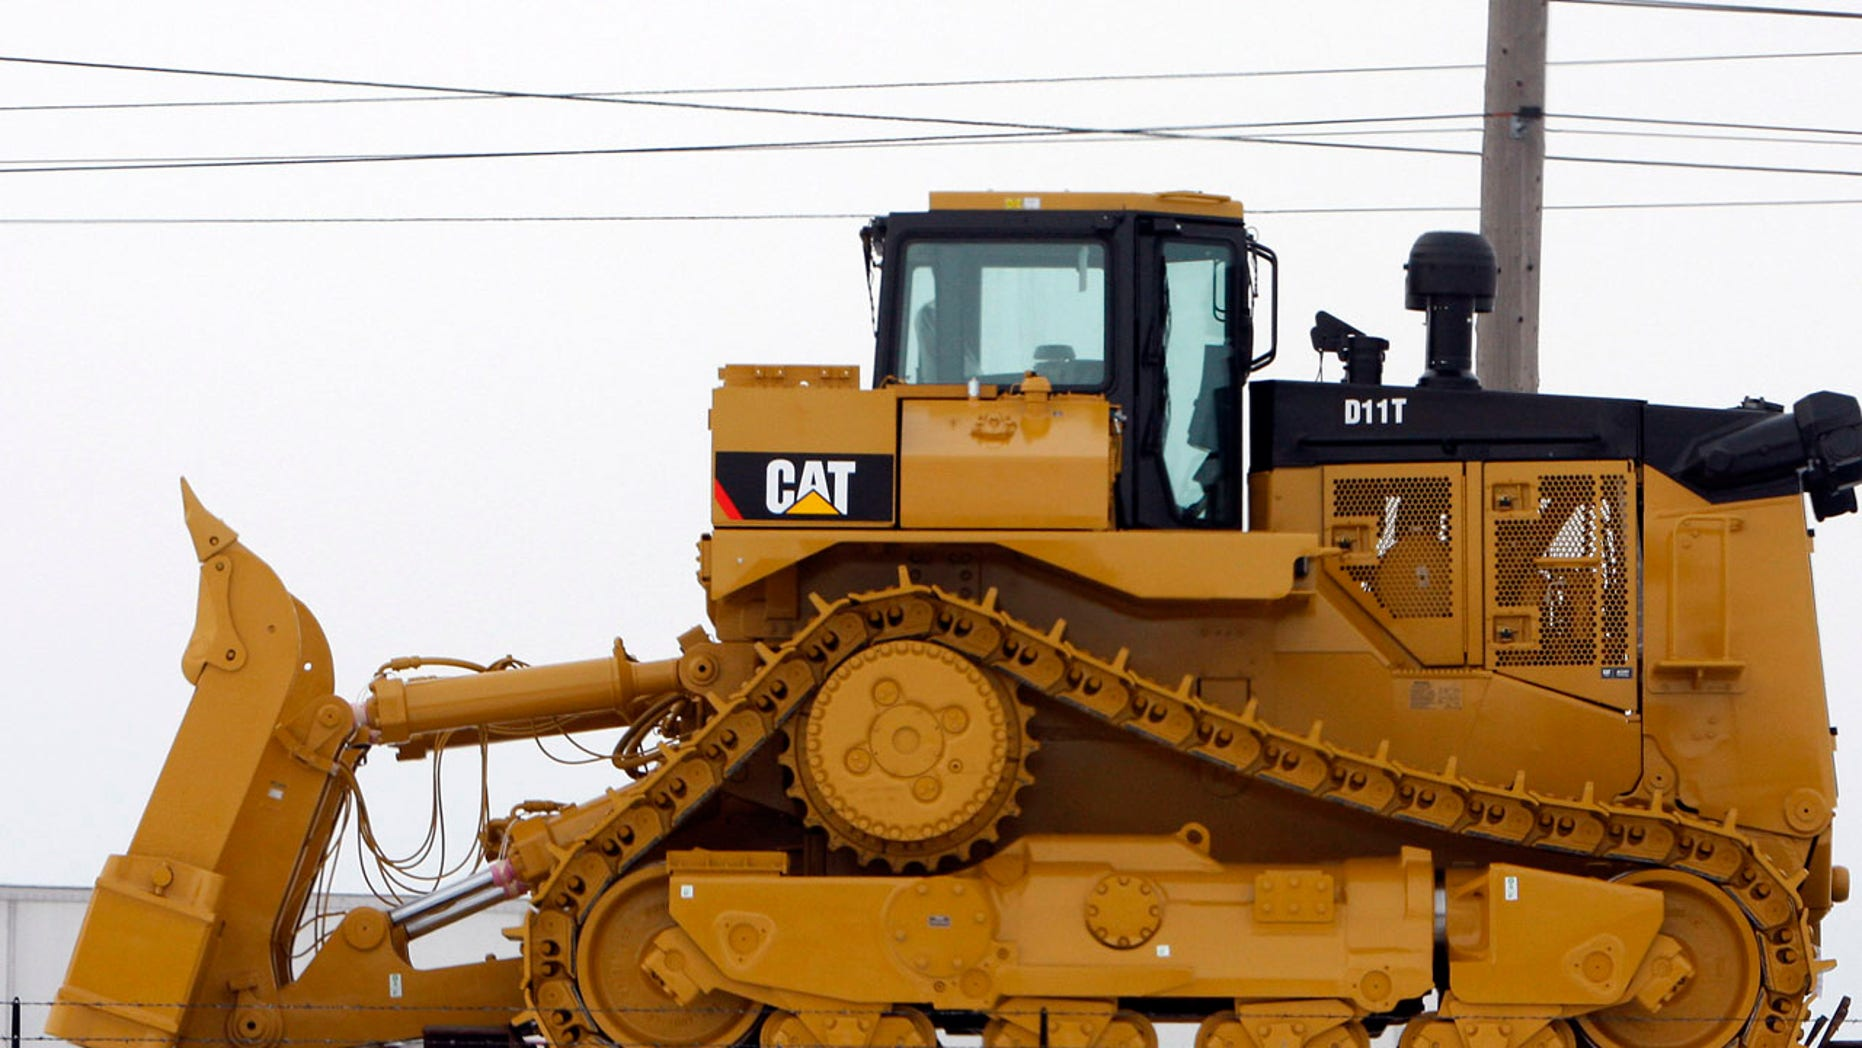 A bulldozer sits on a railcar outside the Caterpillar plant in Peoria, Illinois